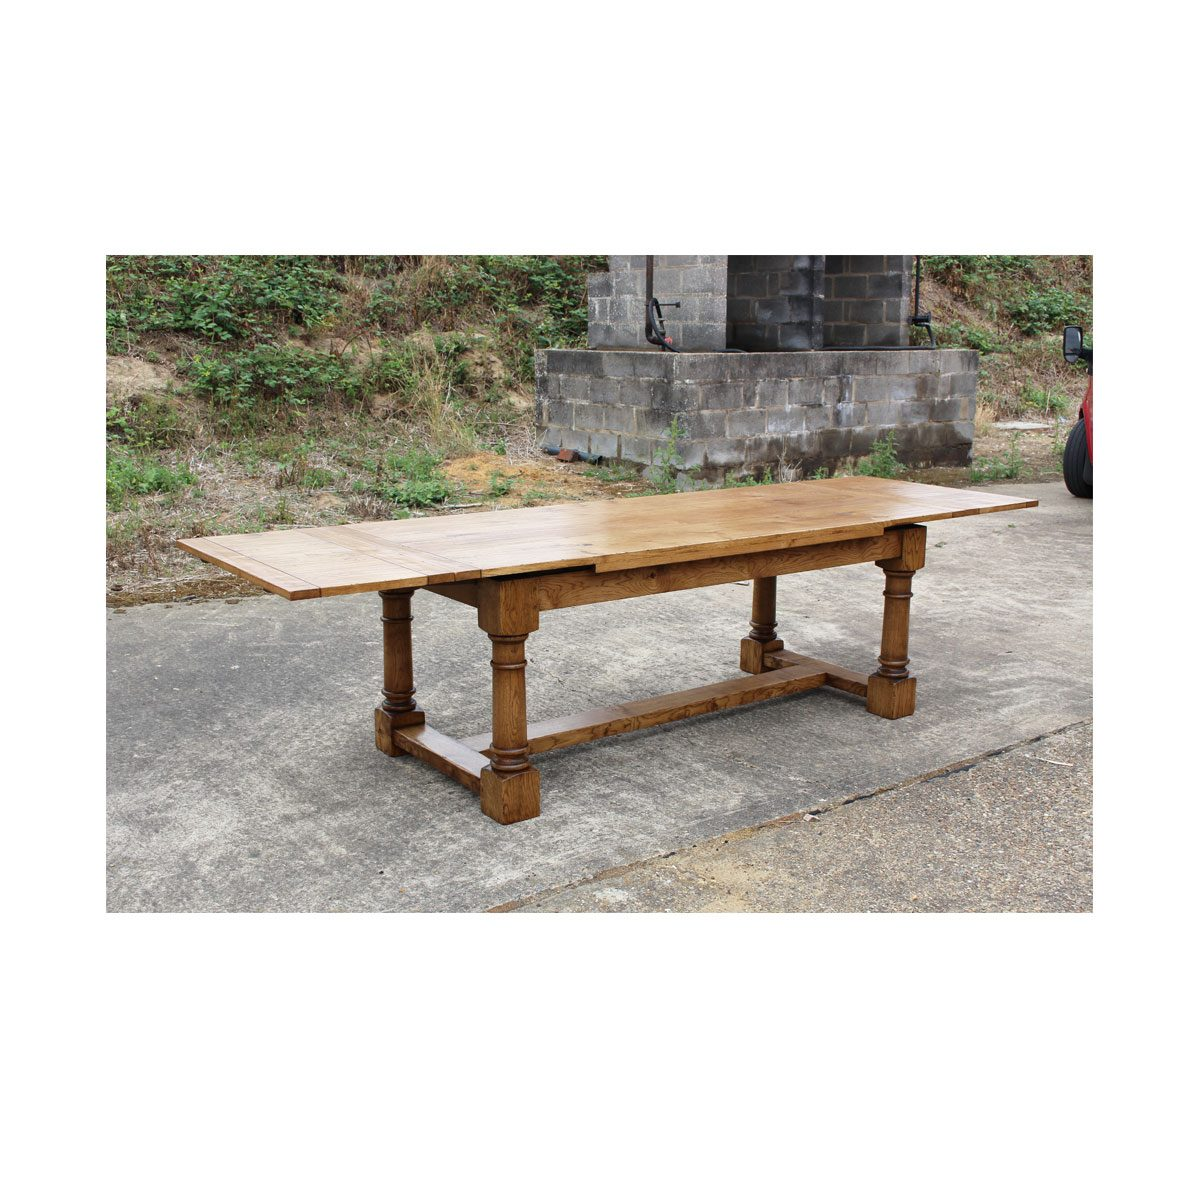 Bespoke Cannon Leg Draw-Leaf Dining Table Handcrafted in Suffolk